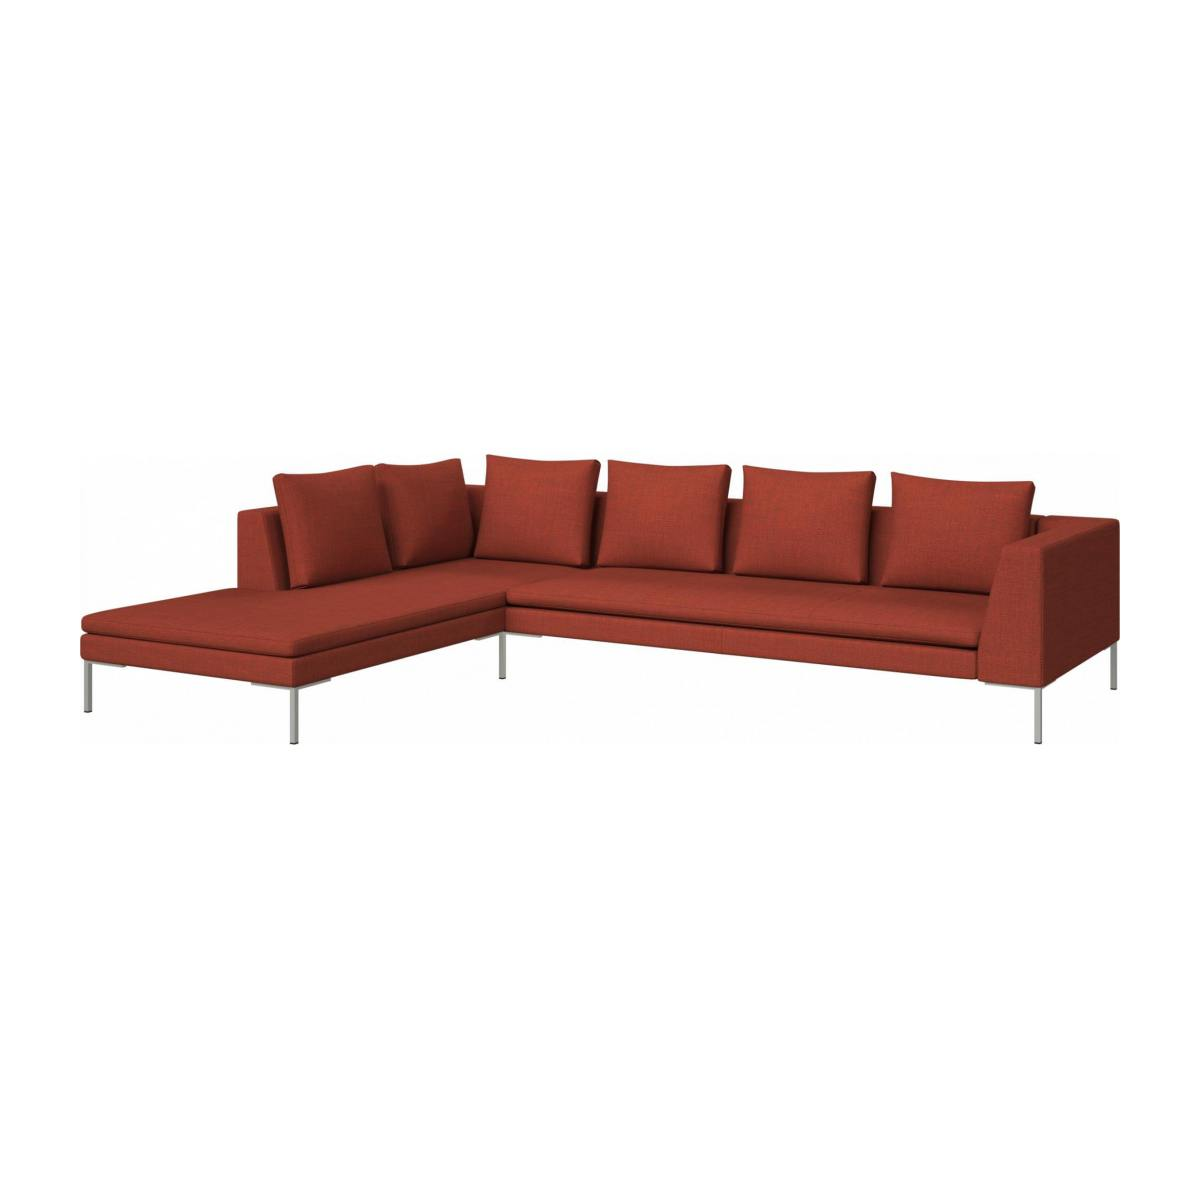 3 seater sofa with chaise longue on the left in Fasoli fabric, warm red rock  n°2